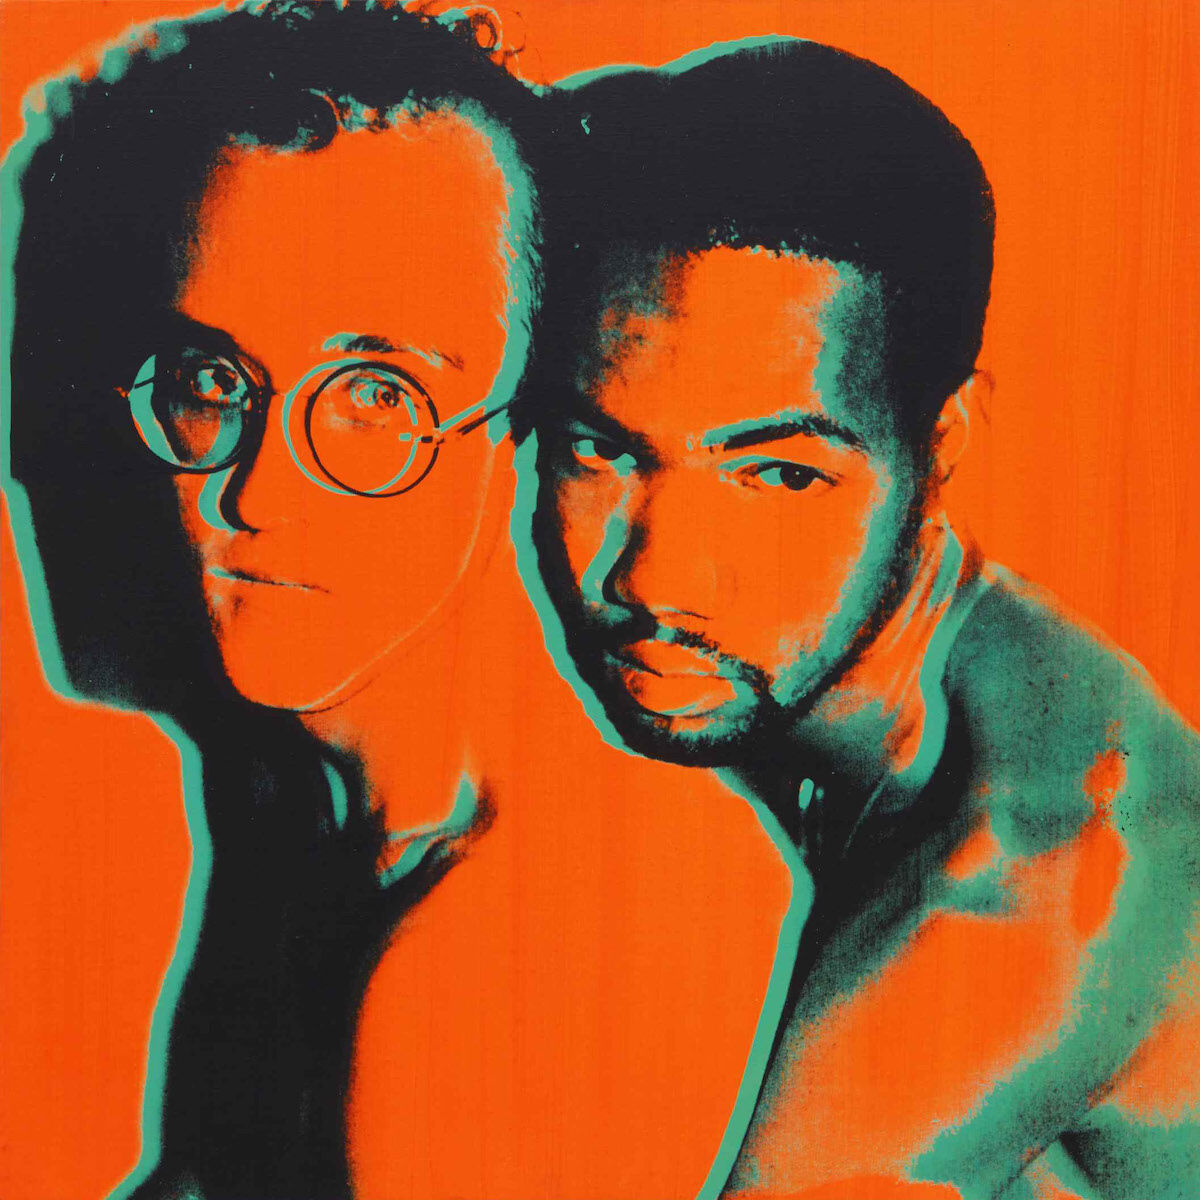 Andy Warhol, Keith Haring and Juan Dubose, 1983. Sold for $504,000. Courtesy Sotheby's.